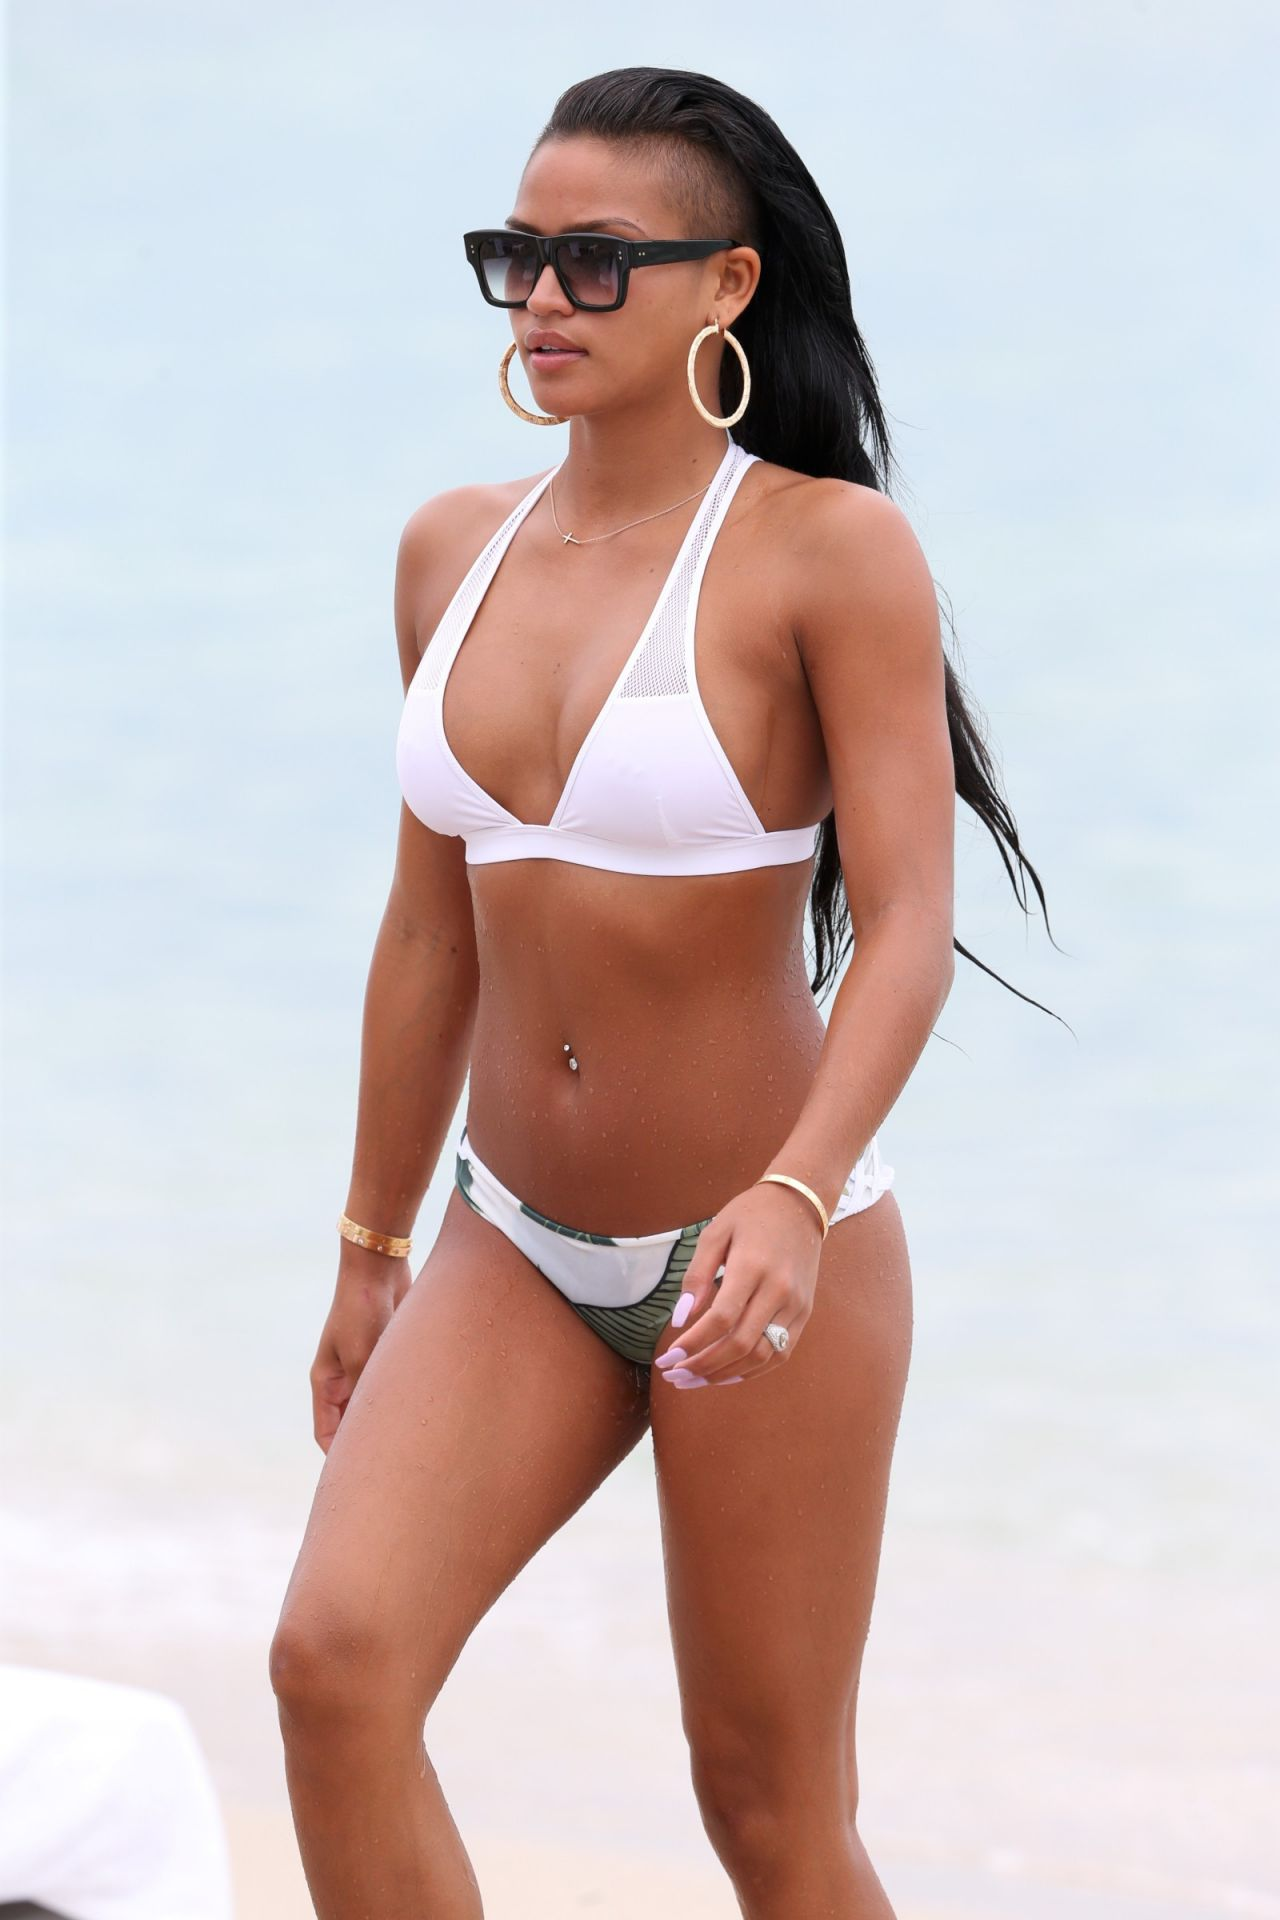 Cassie Ventura in a White Bikini in Miami Beach - July 2013